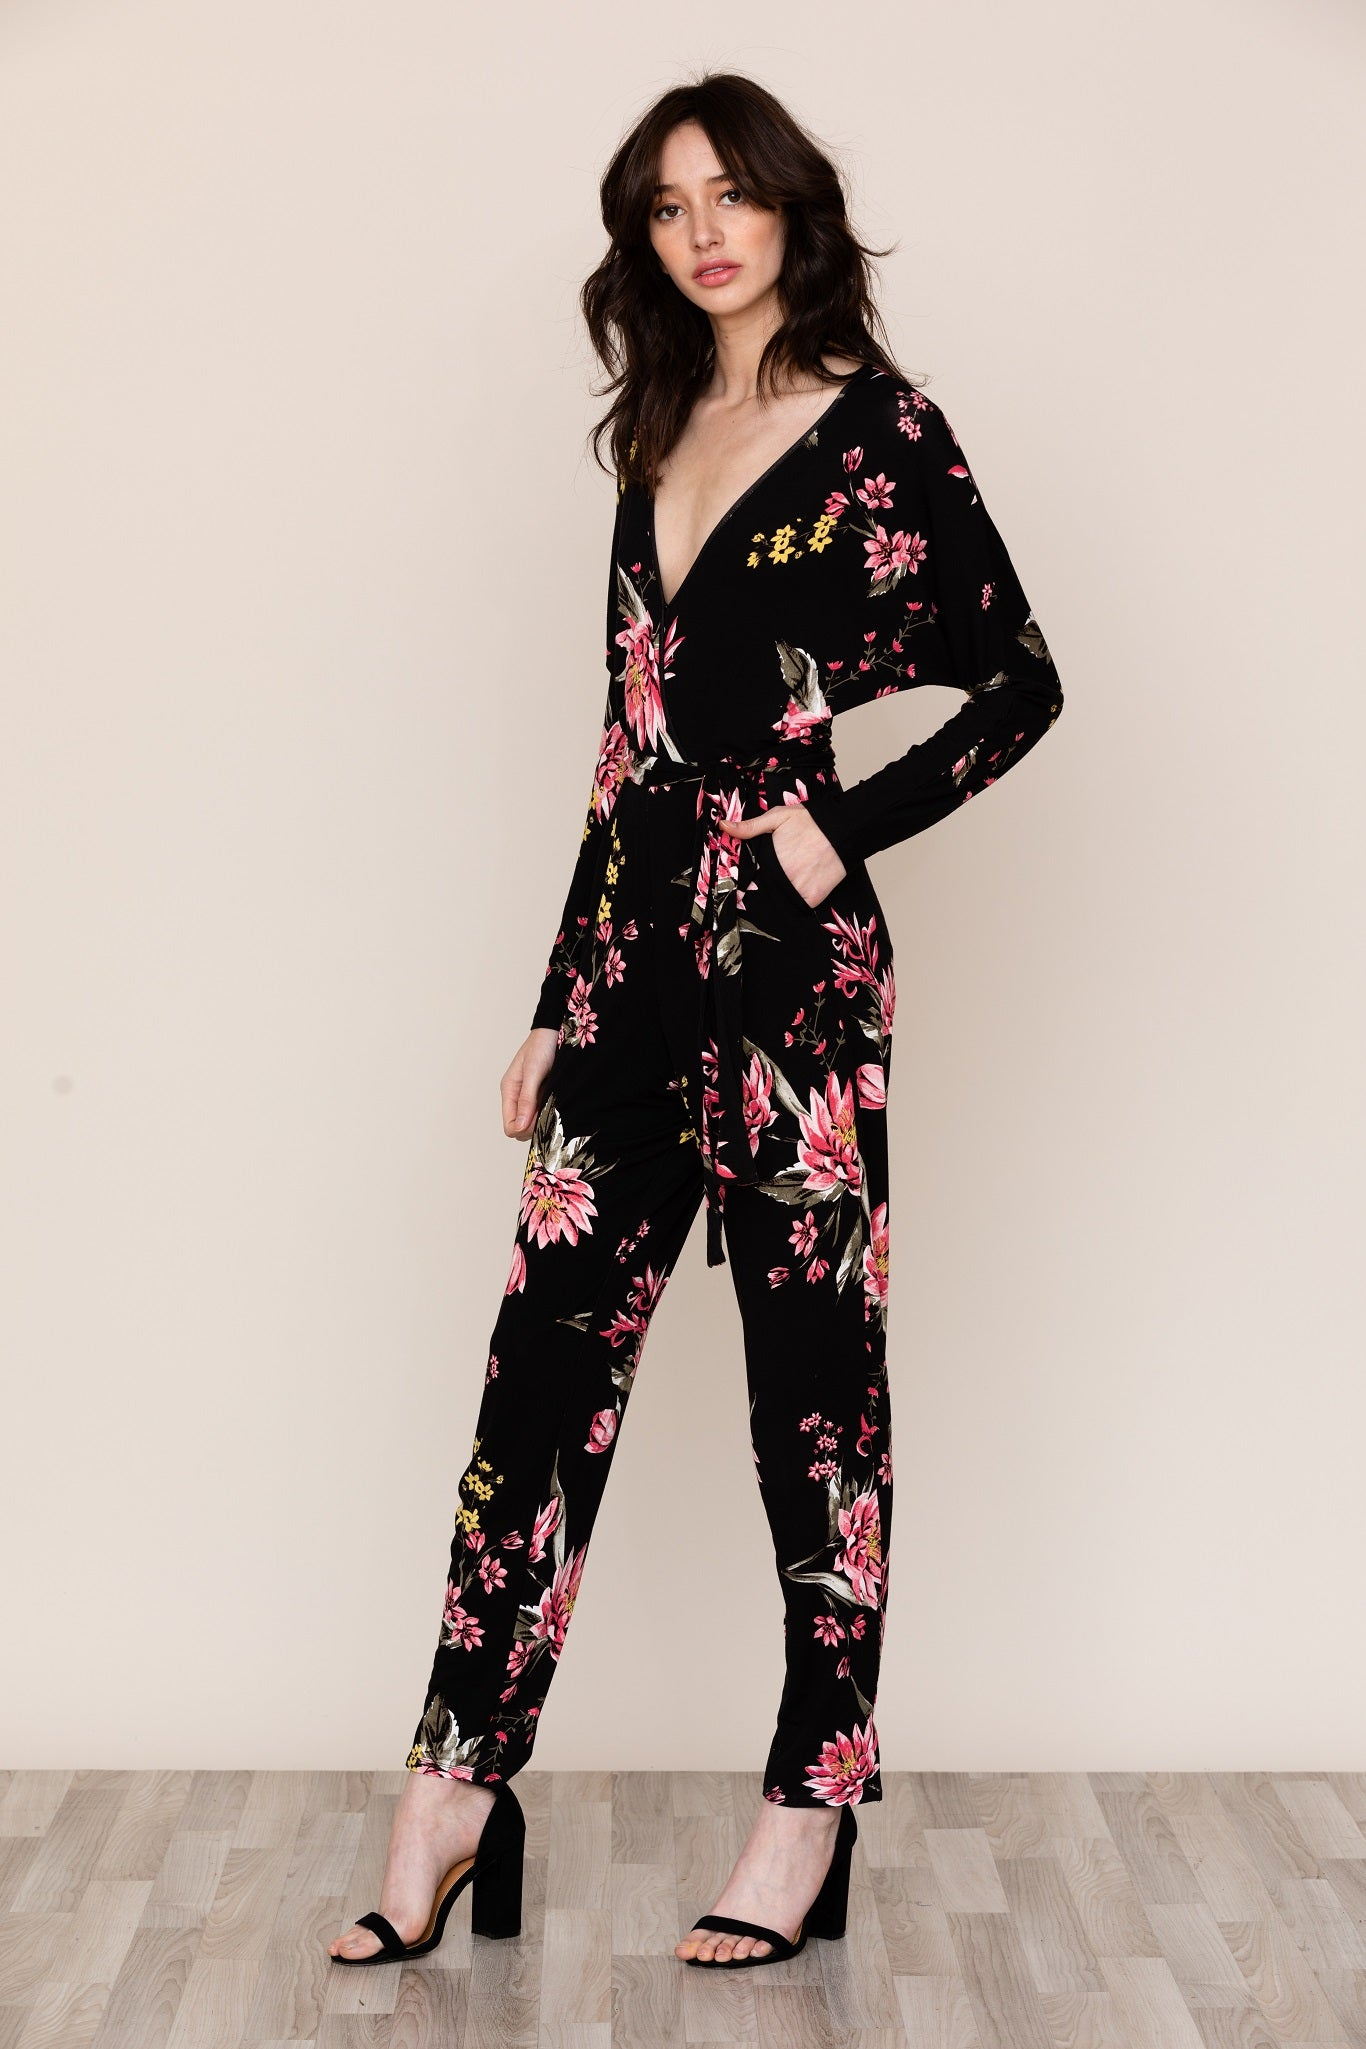 FREE FALL JERSEY JUMPSUIT